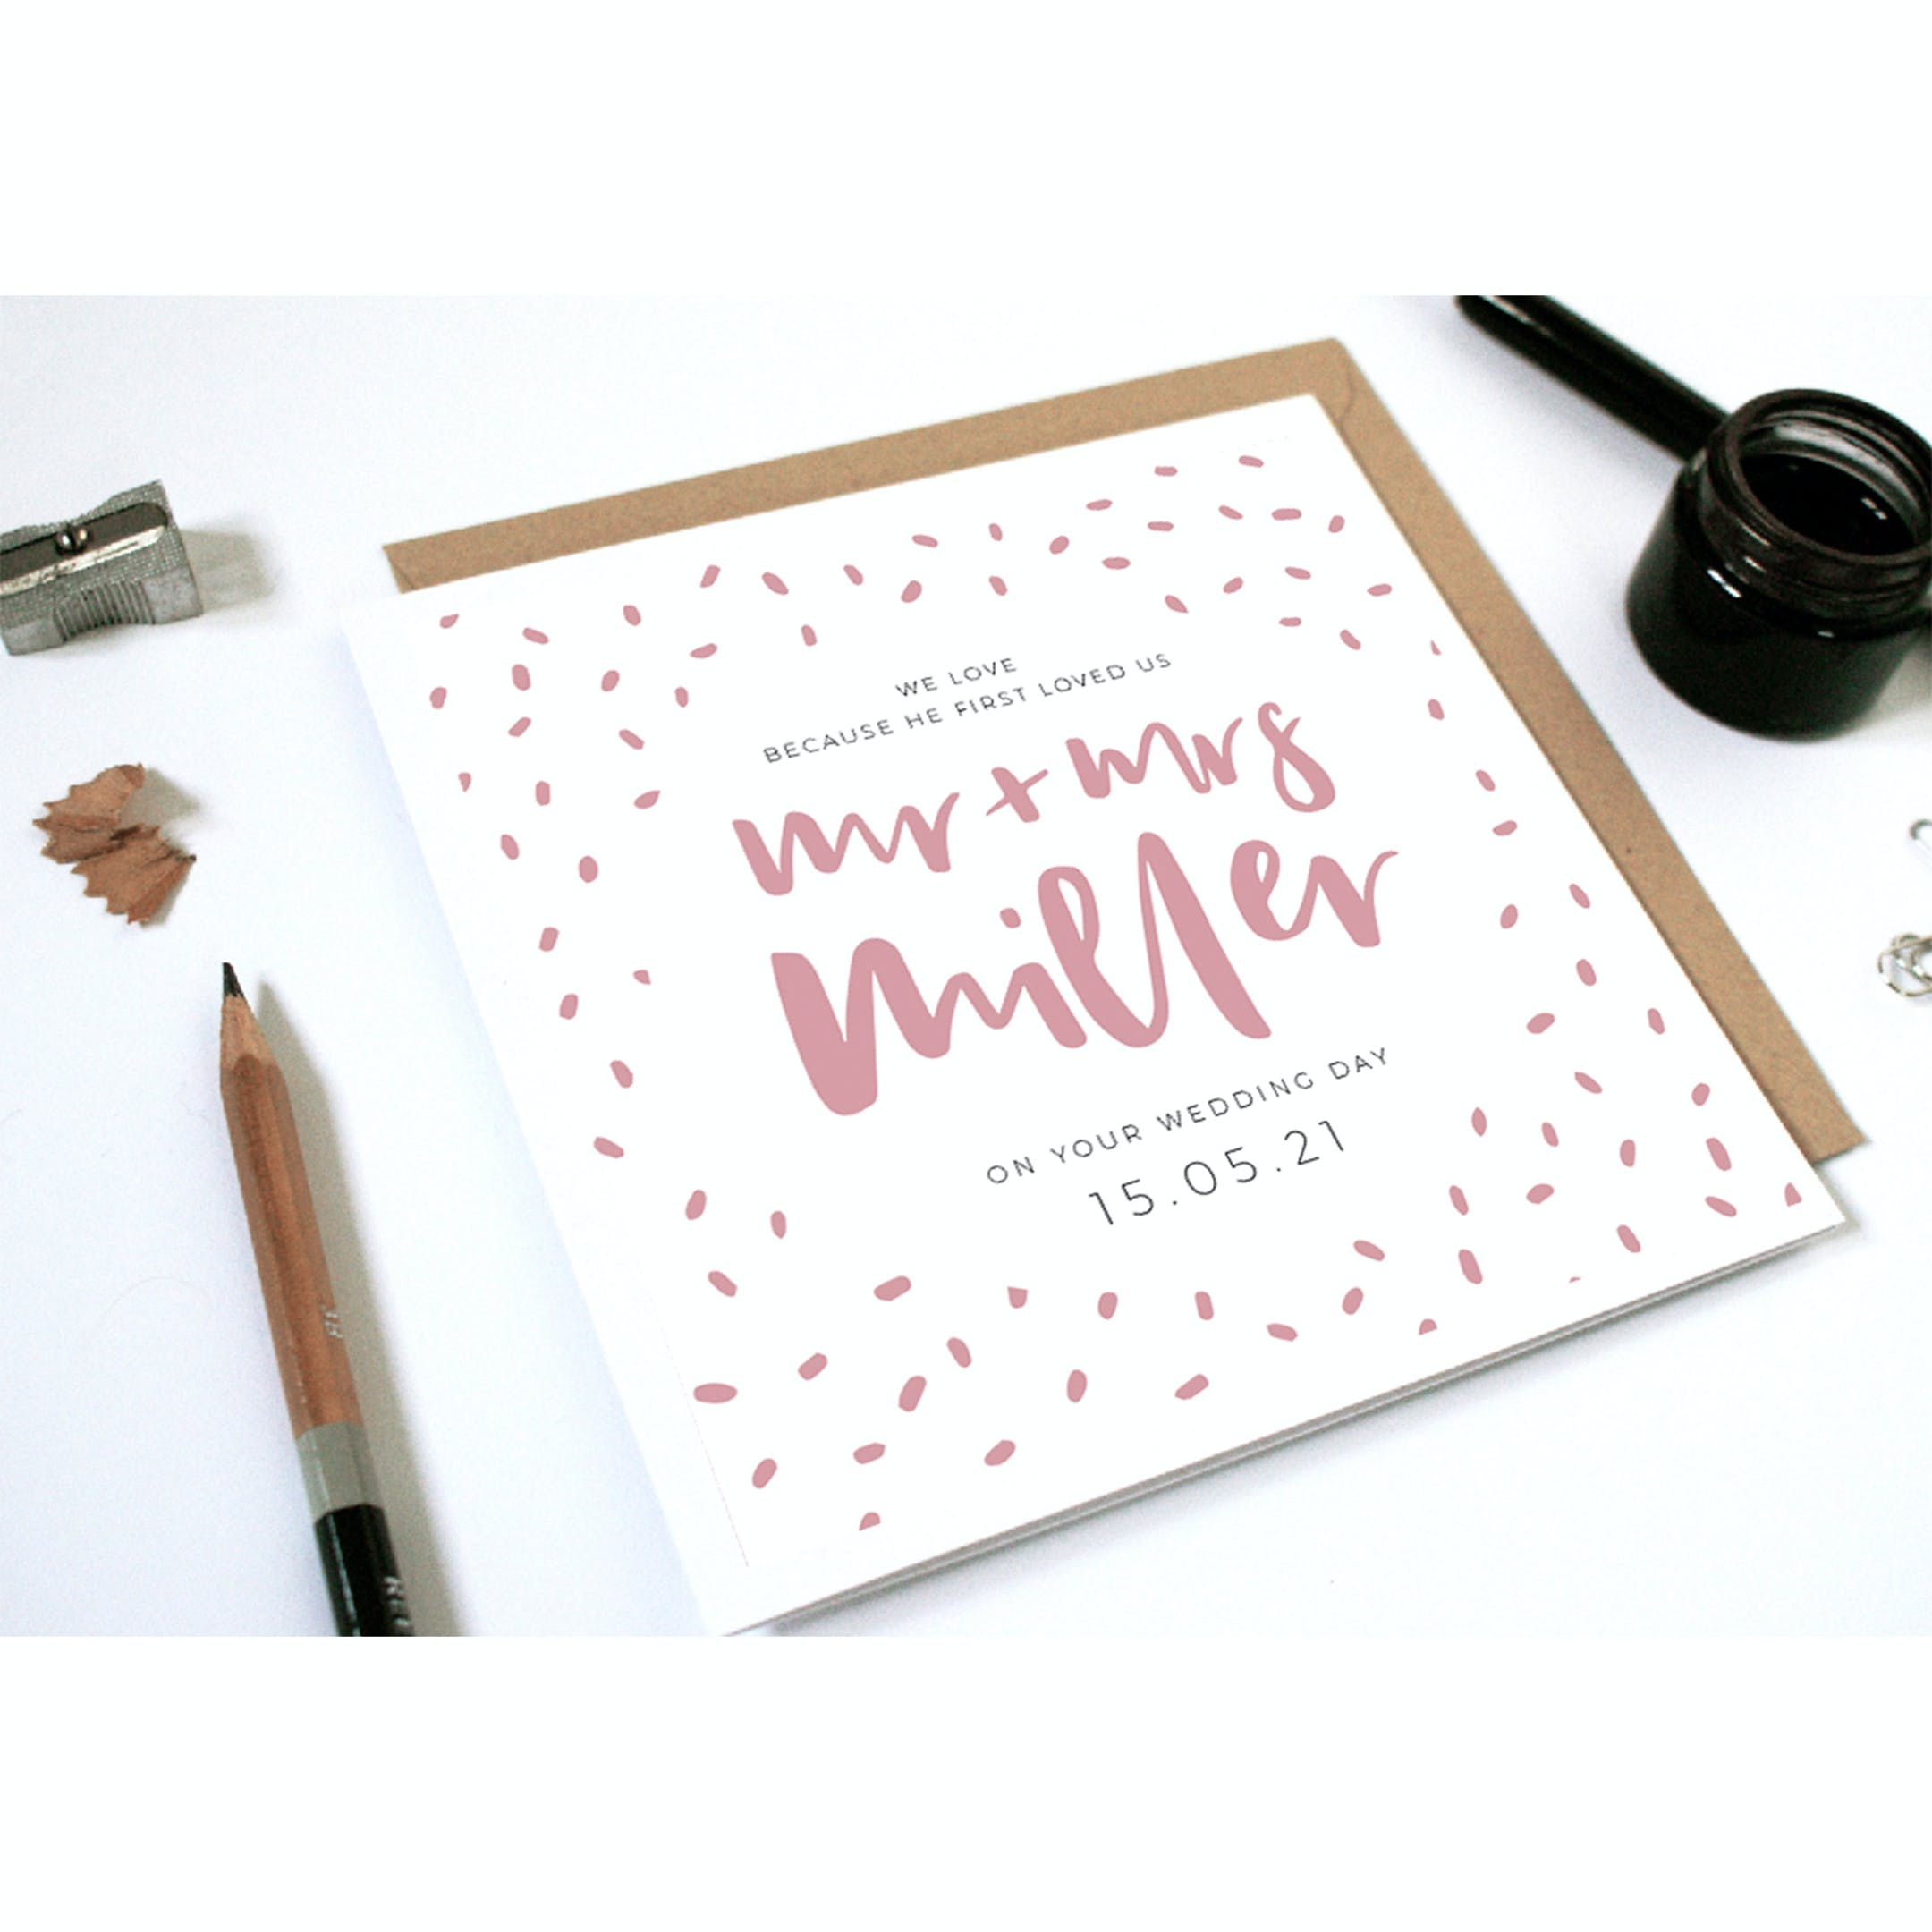 Pink splattered effect for Mr + Mrs Miller - personalised Christian wedding card by Naptime Illustration at Cheerfully Given